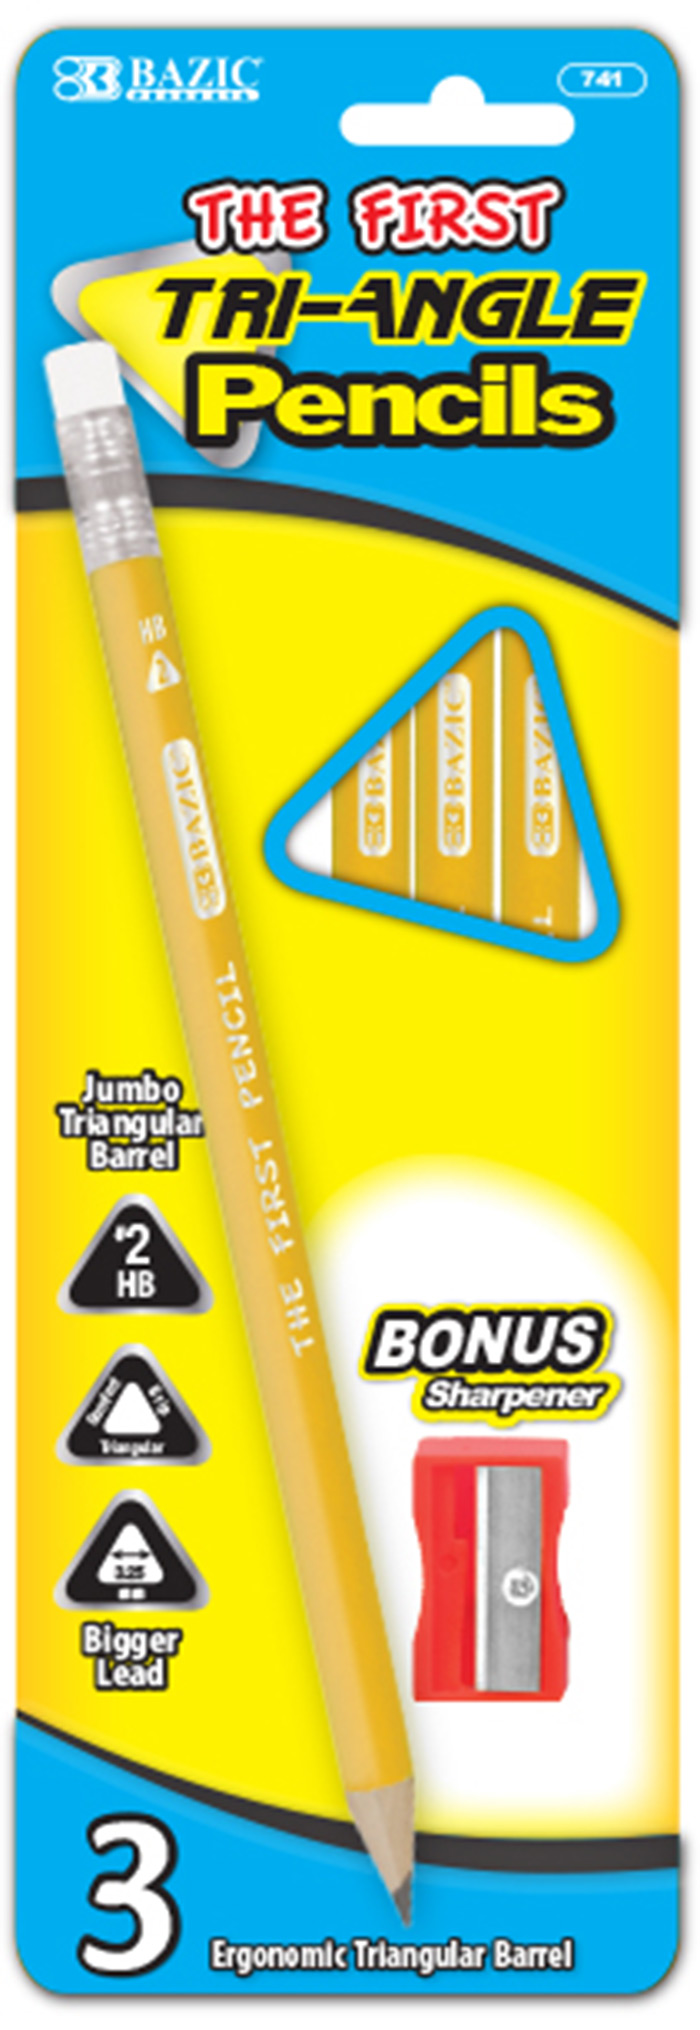 cheap triangle first pencils